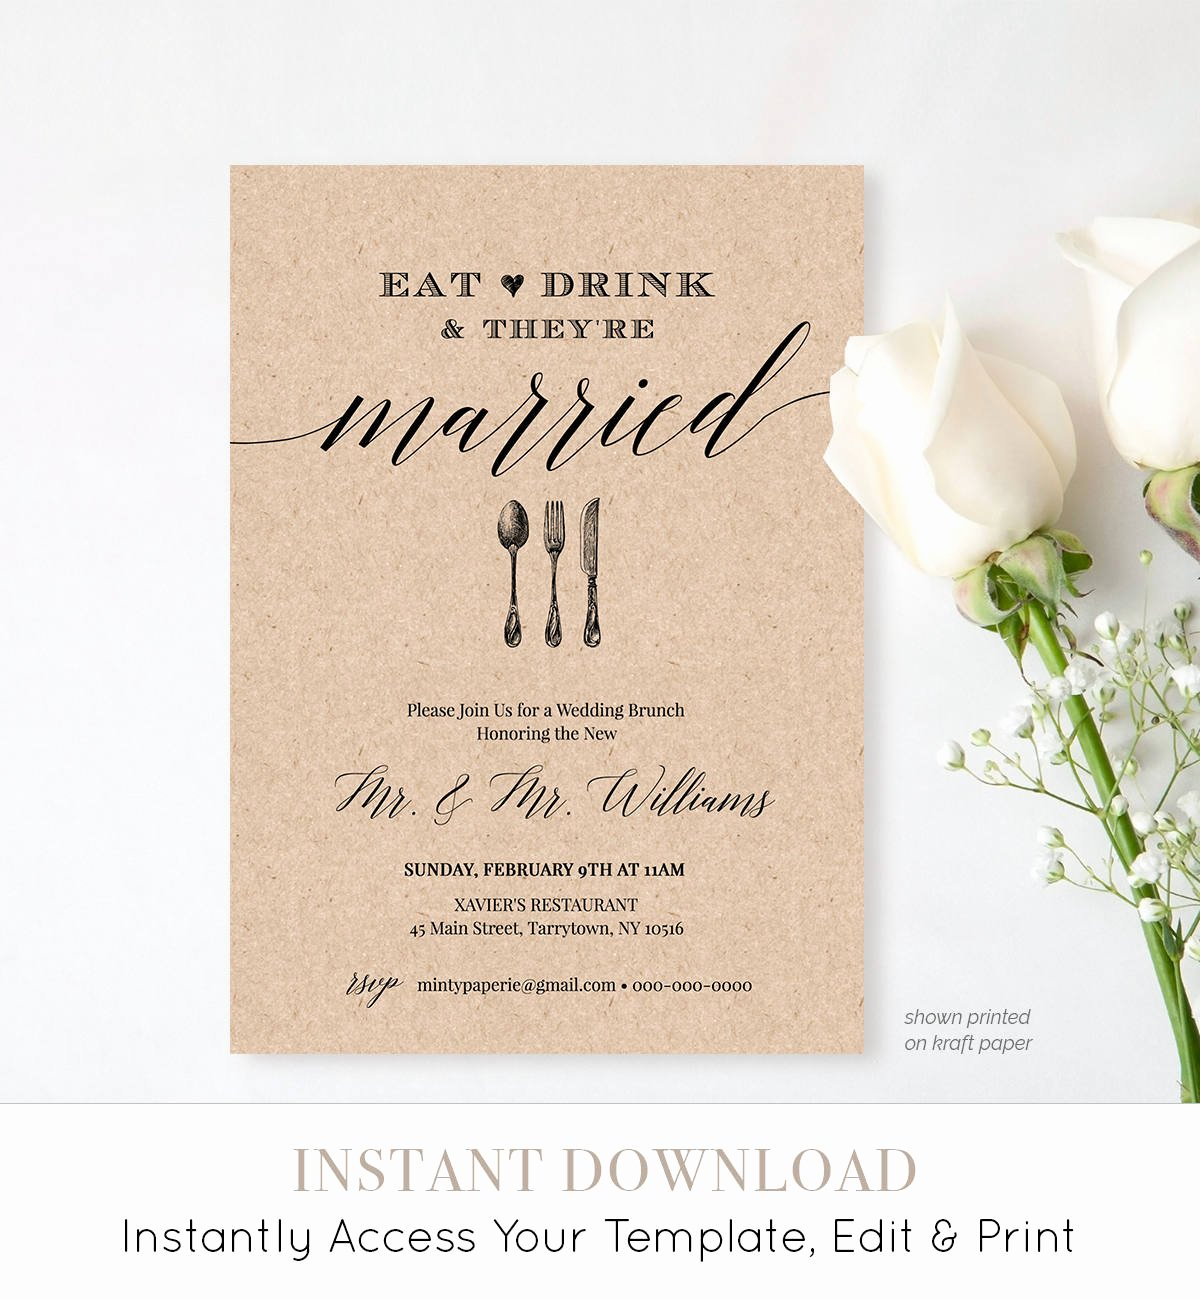 Brunch Invitation Template Free Luxury Post Wedding Brunch Invitation Template Printable Brunch